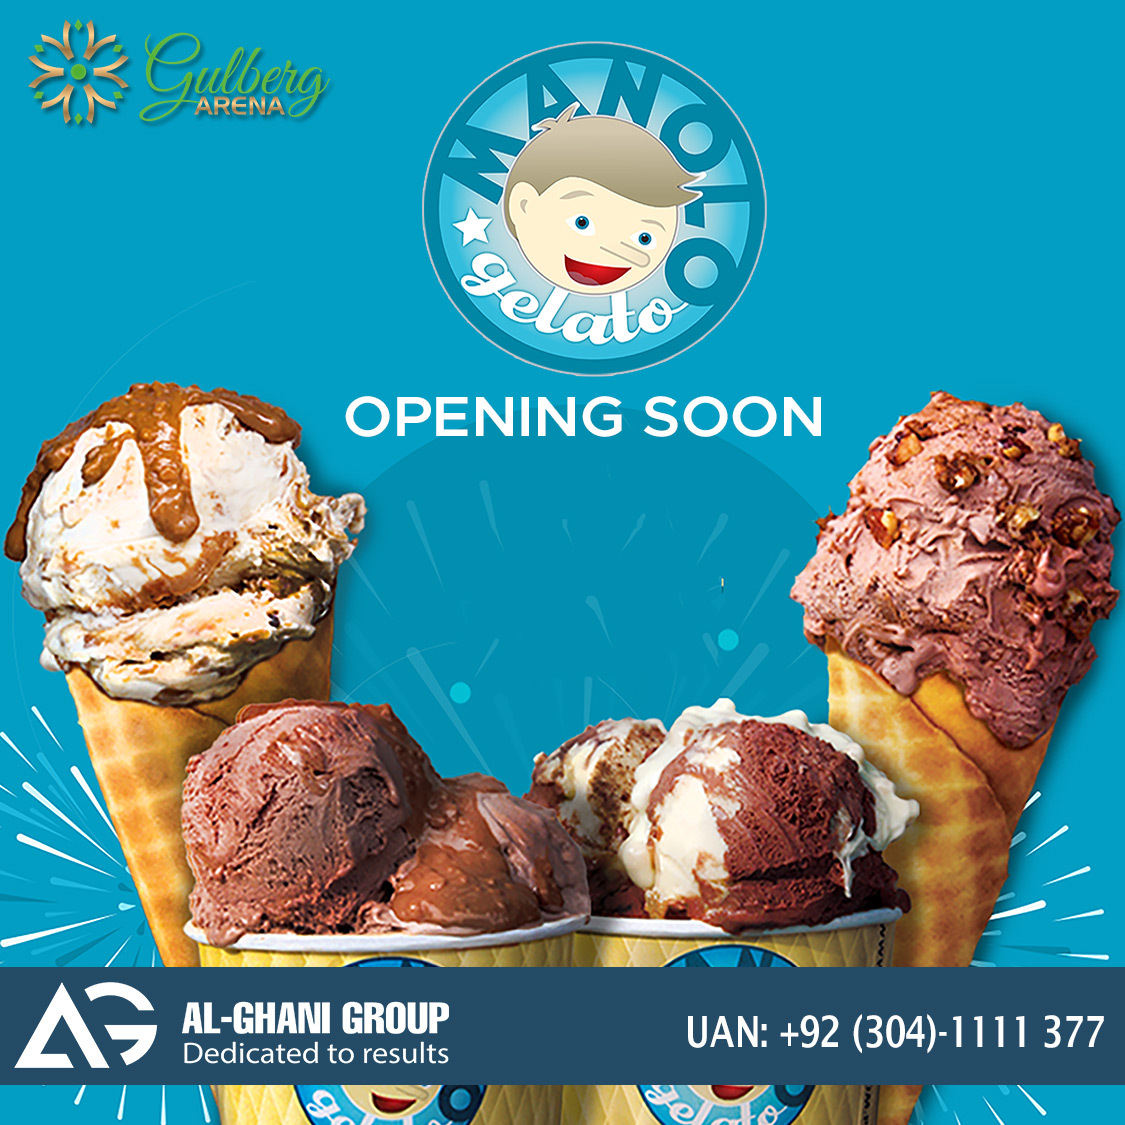 Manolo outlet in food court gulberg arena at Gulberg Greens Islamabad